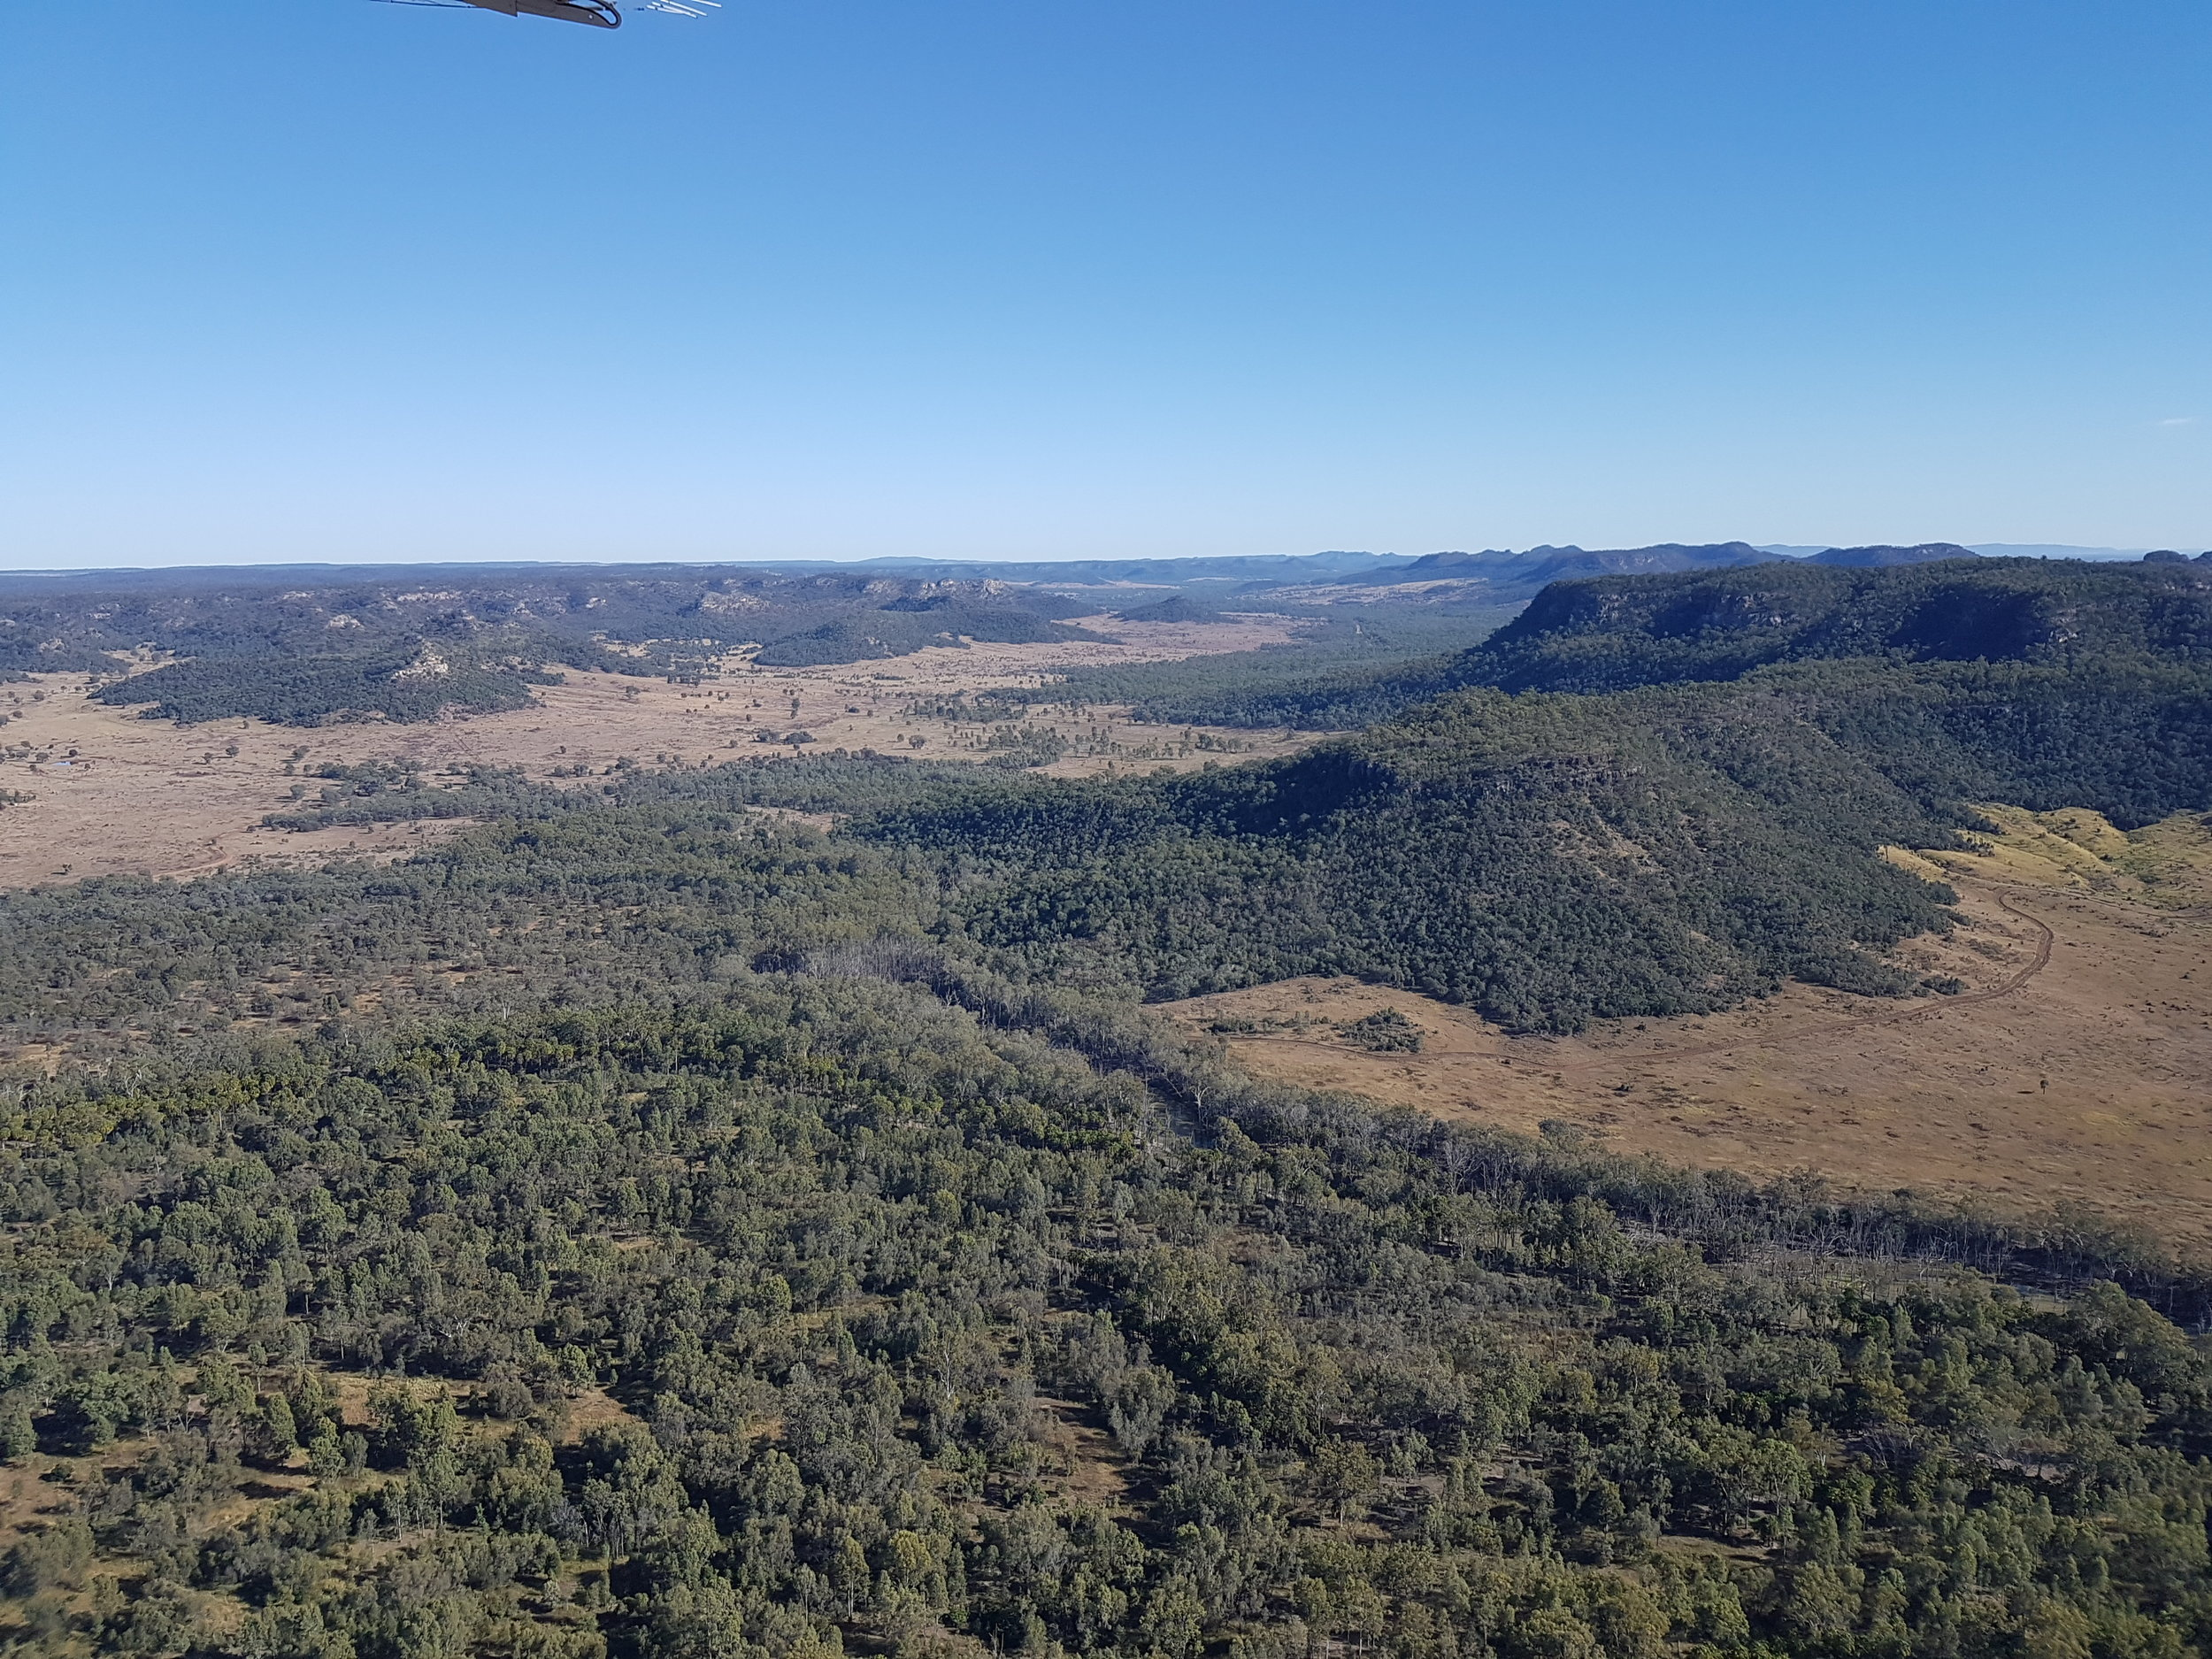 Aerial view looking out over Wulli Wulli country, Queensland, Australia. © Everick Foundation Ltd